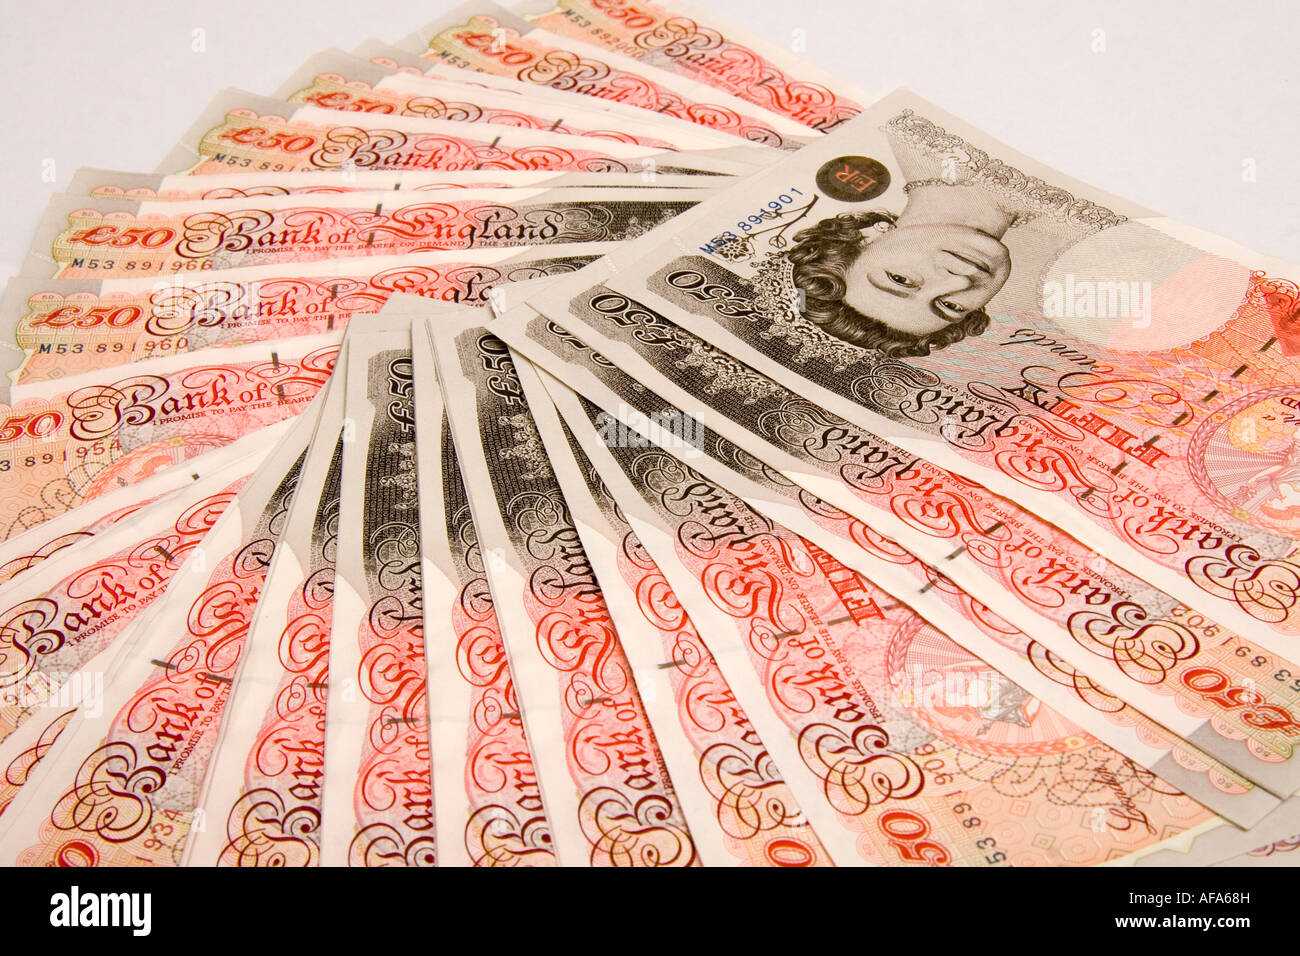 A fan of five thousand pounds in new fifty pound notes 5000 50 - Stock Image